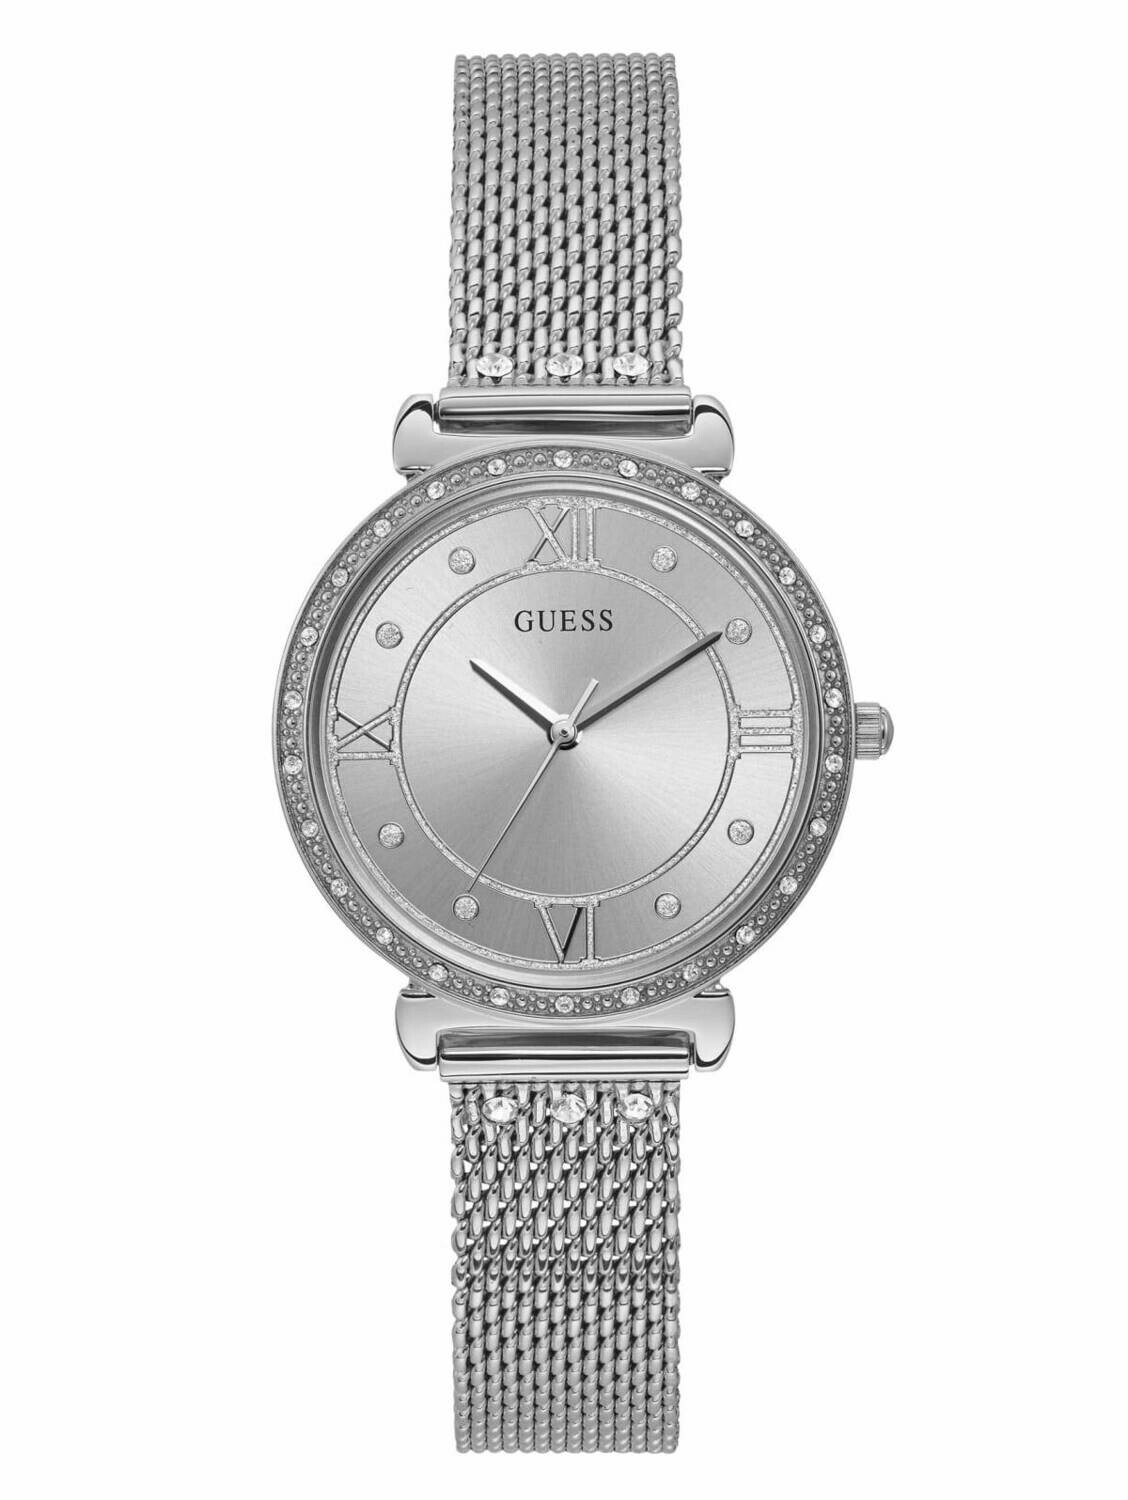 GUESS LDS WATCH SILVER FACE/STRAP